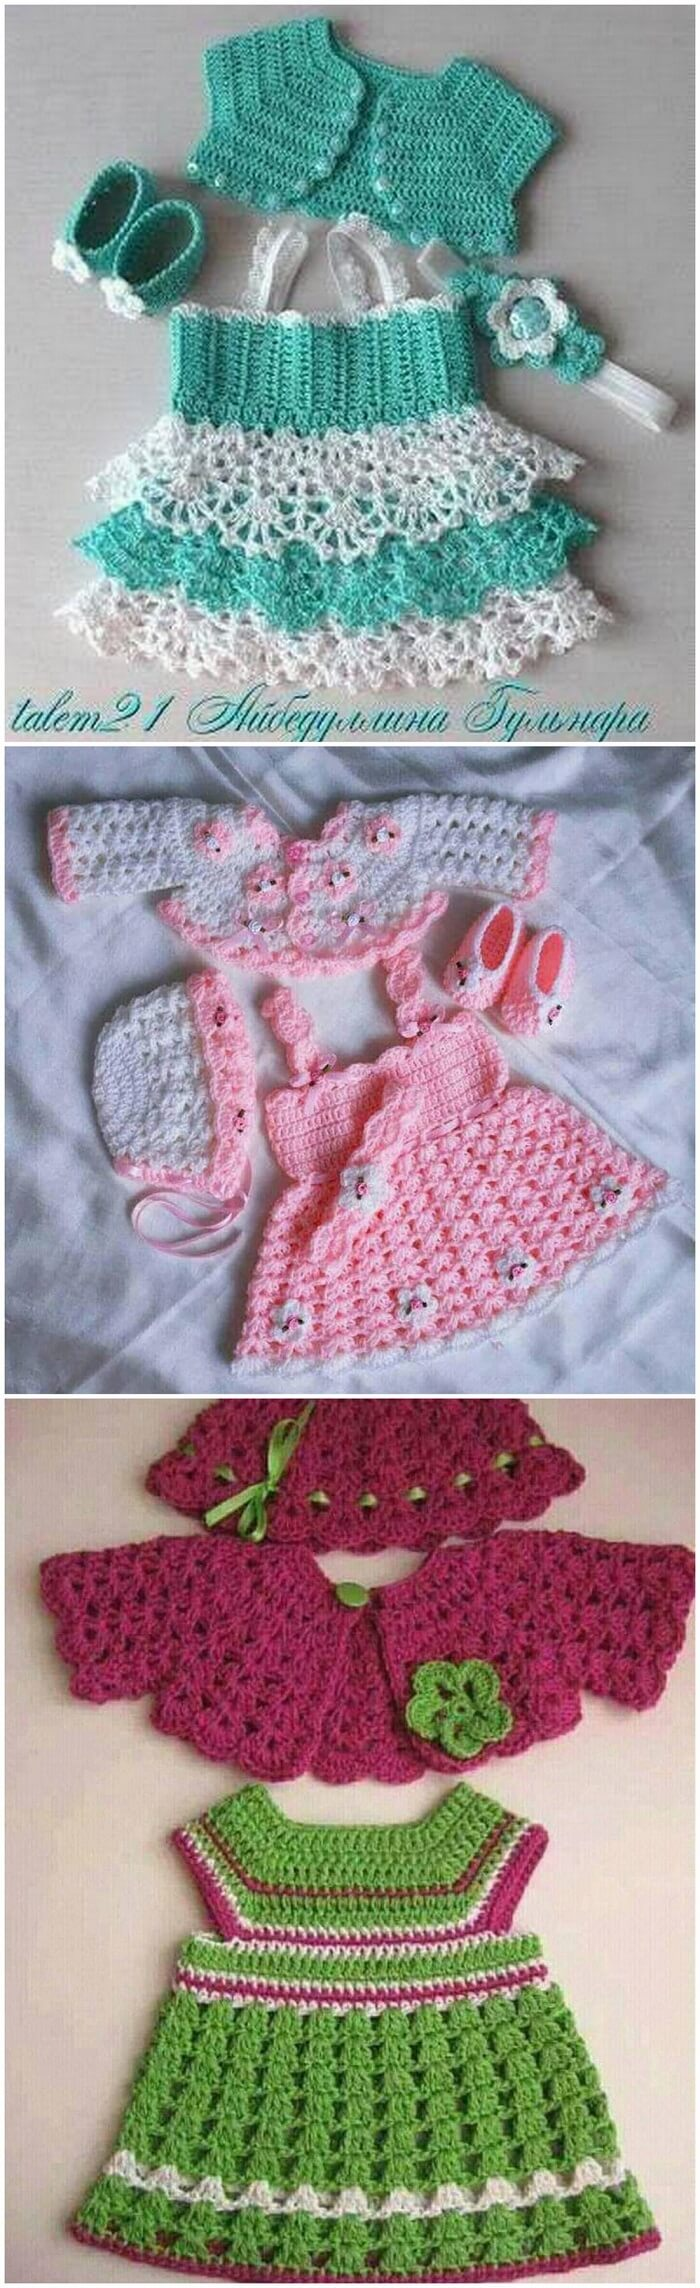 DIY-Homemade- Crochet-Projects-4